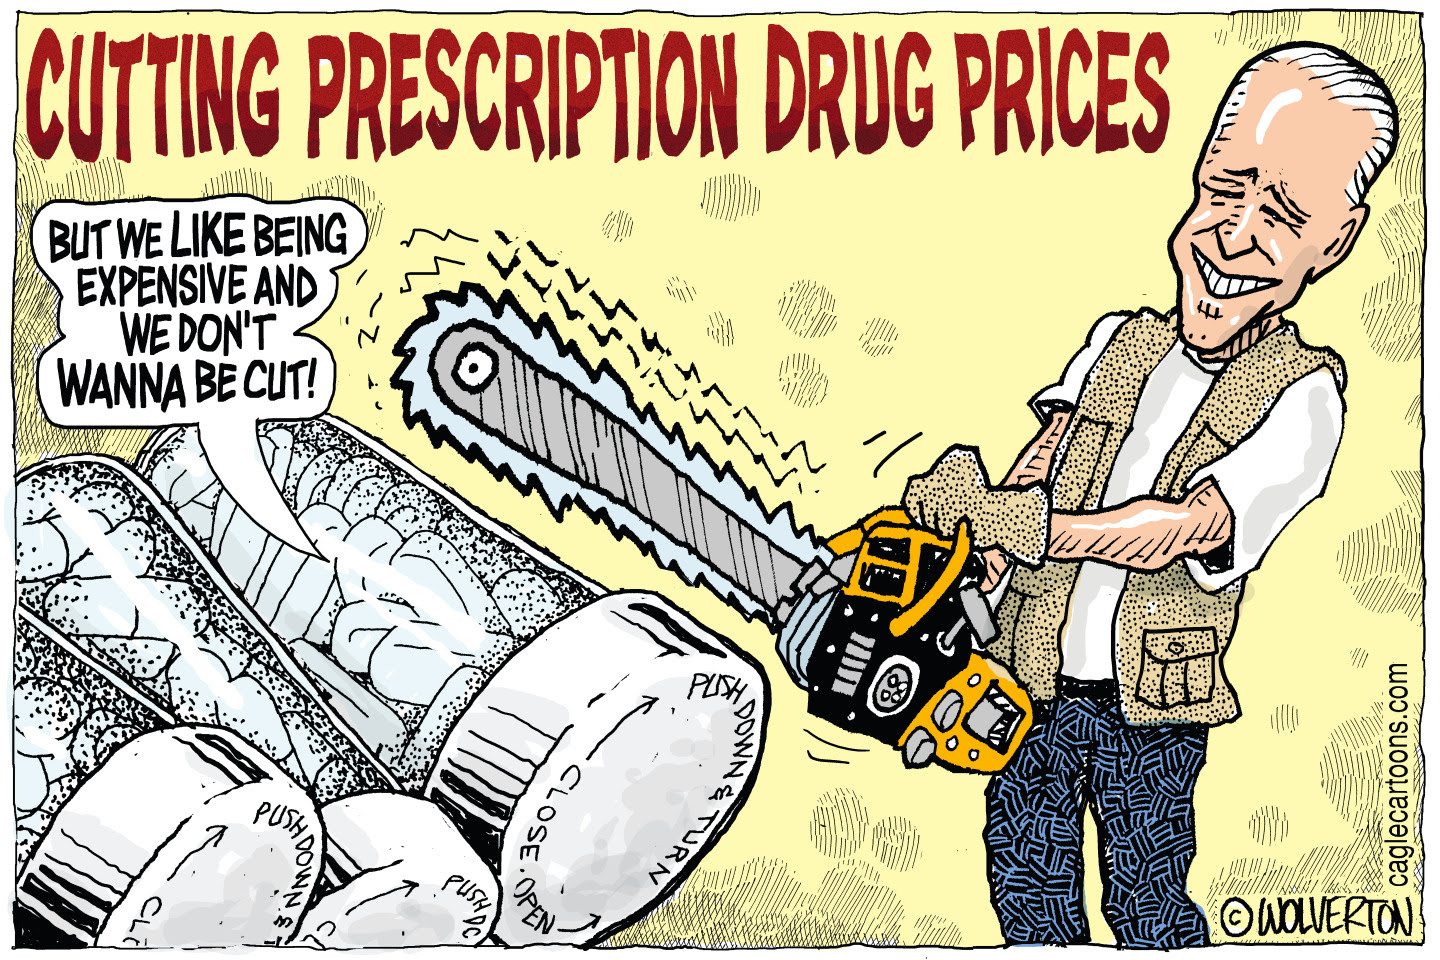 President Biden proposes to bring drug prices down and fight corporate greed.